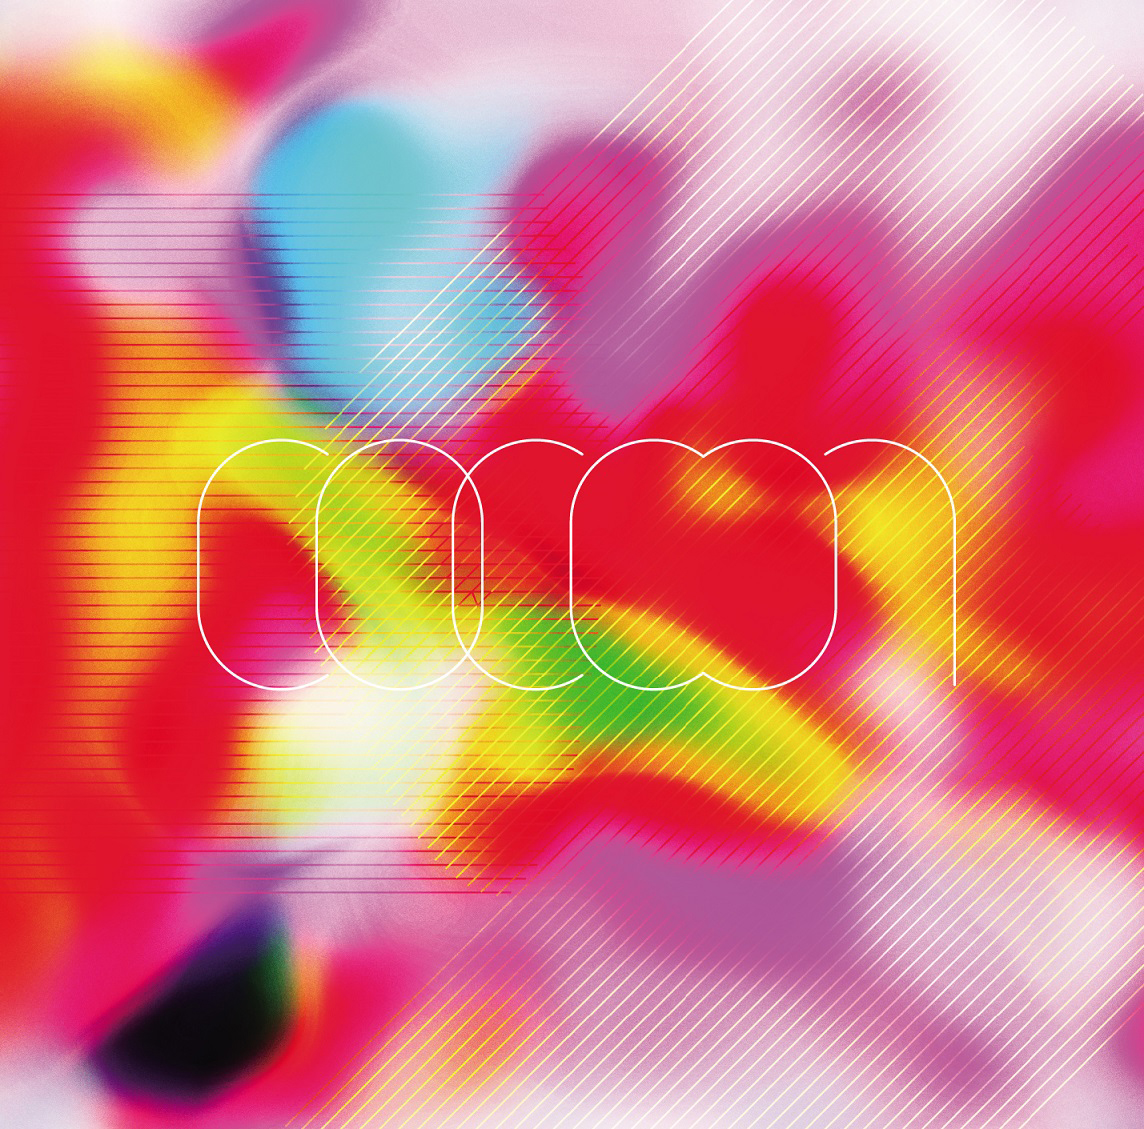 androp『cocoon』通常盤